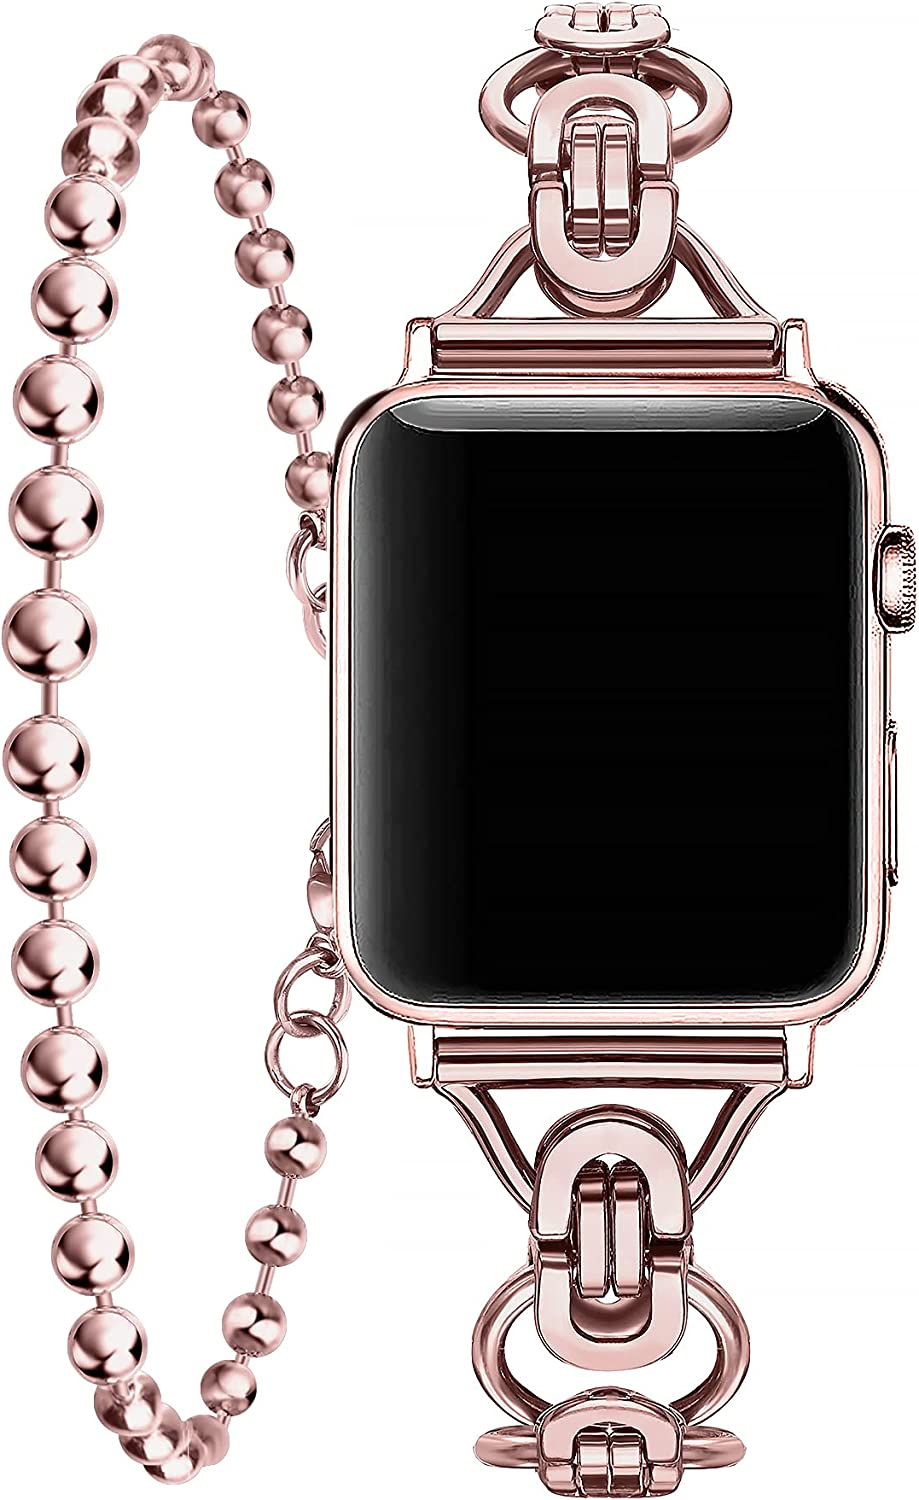 Secbolt Bands Compatible with Apple Watch Band 38mm 40mm iWatch SE Series 6/5/4/3/2/1, Women Dressy Double Tour Bracelet Ball Chain Wristband Stainless Steel